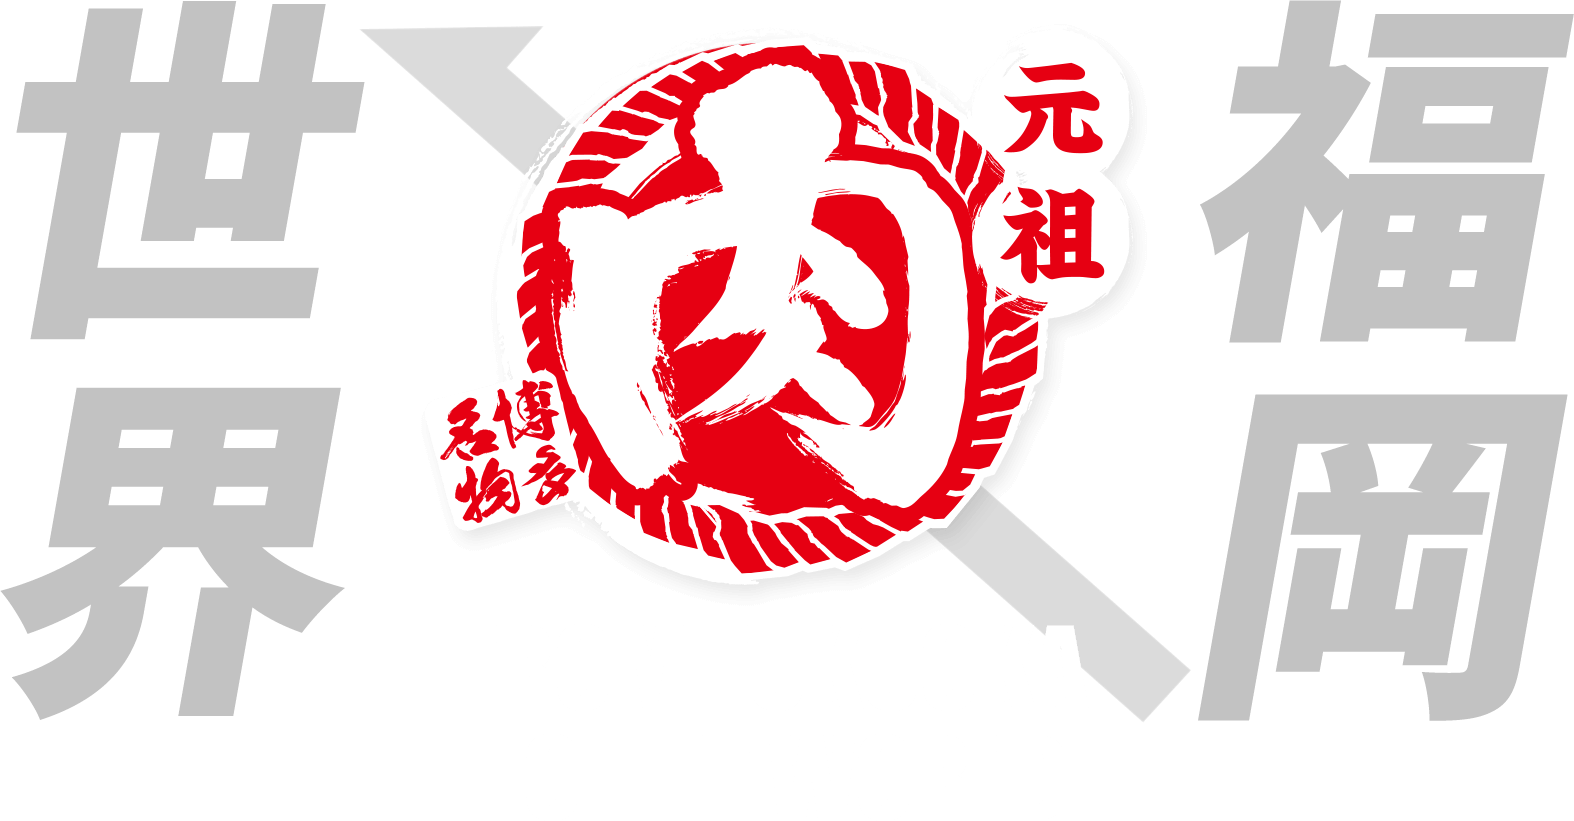 FROM FUKUOKA TO THE WORLD